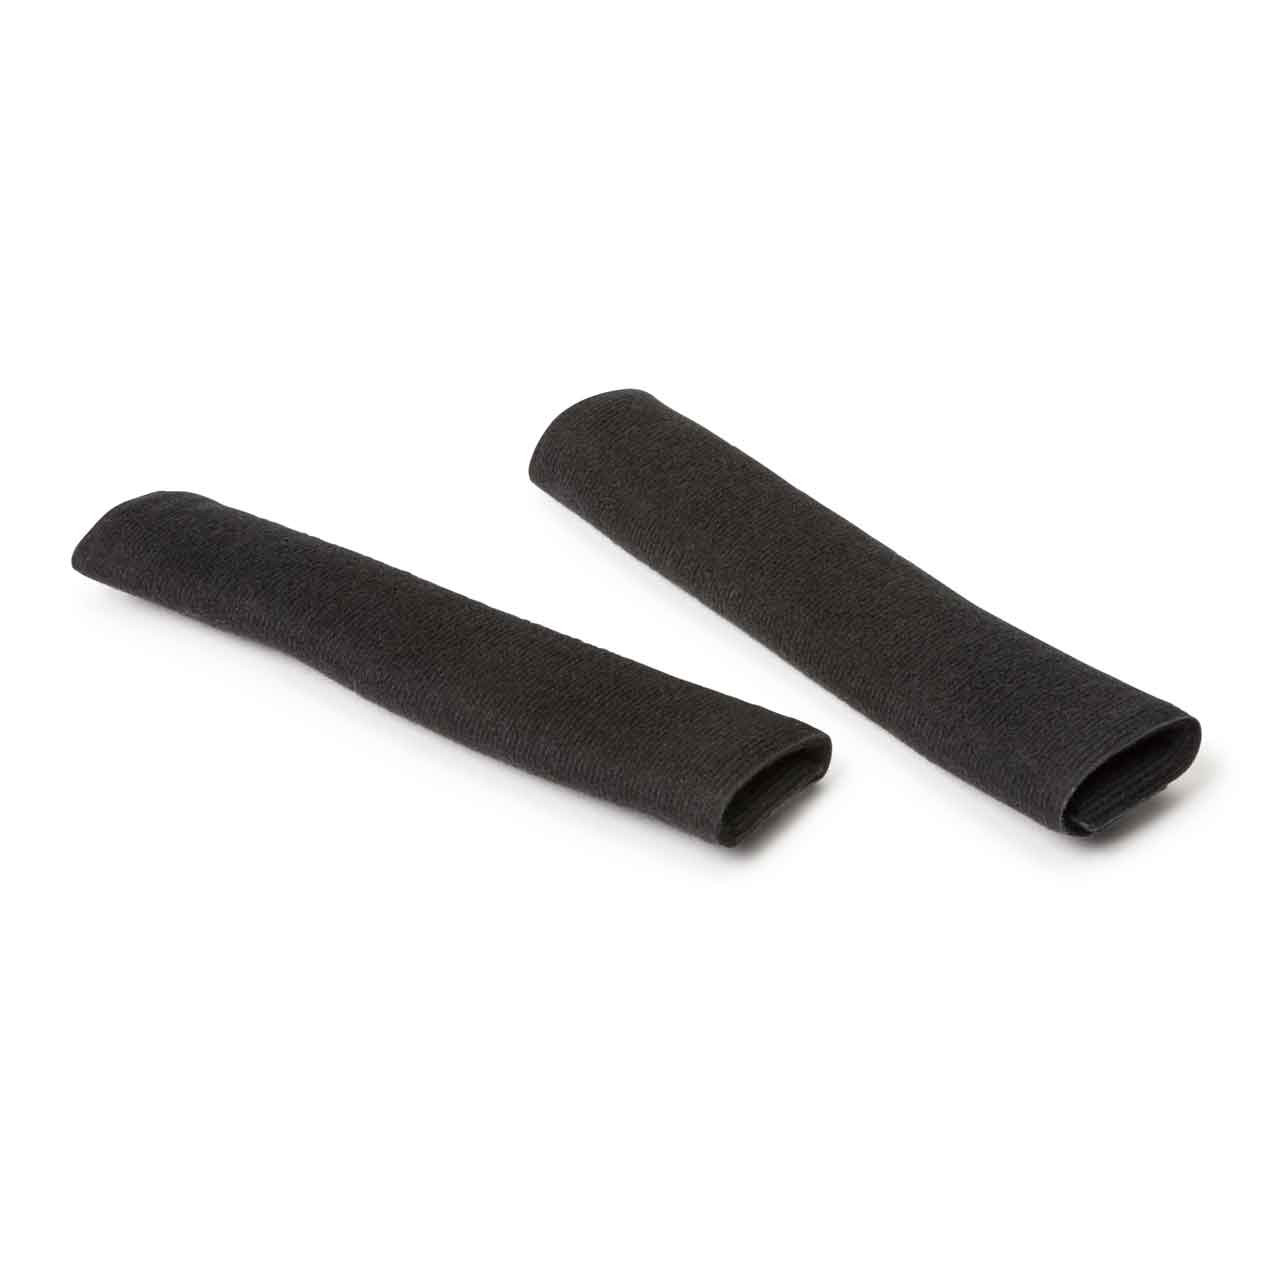 Lincoln Electric KP3943-1 PAPR VIKING Sweatband 2 pack